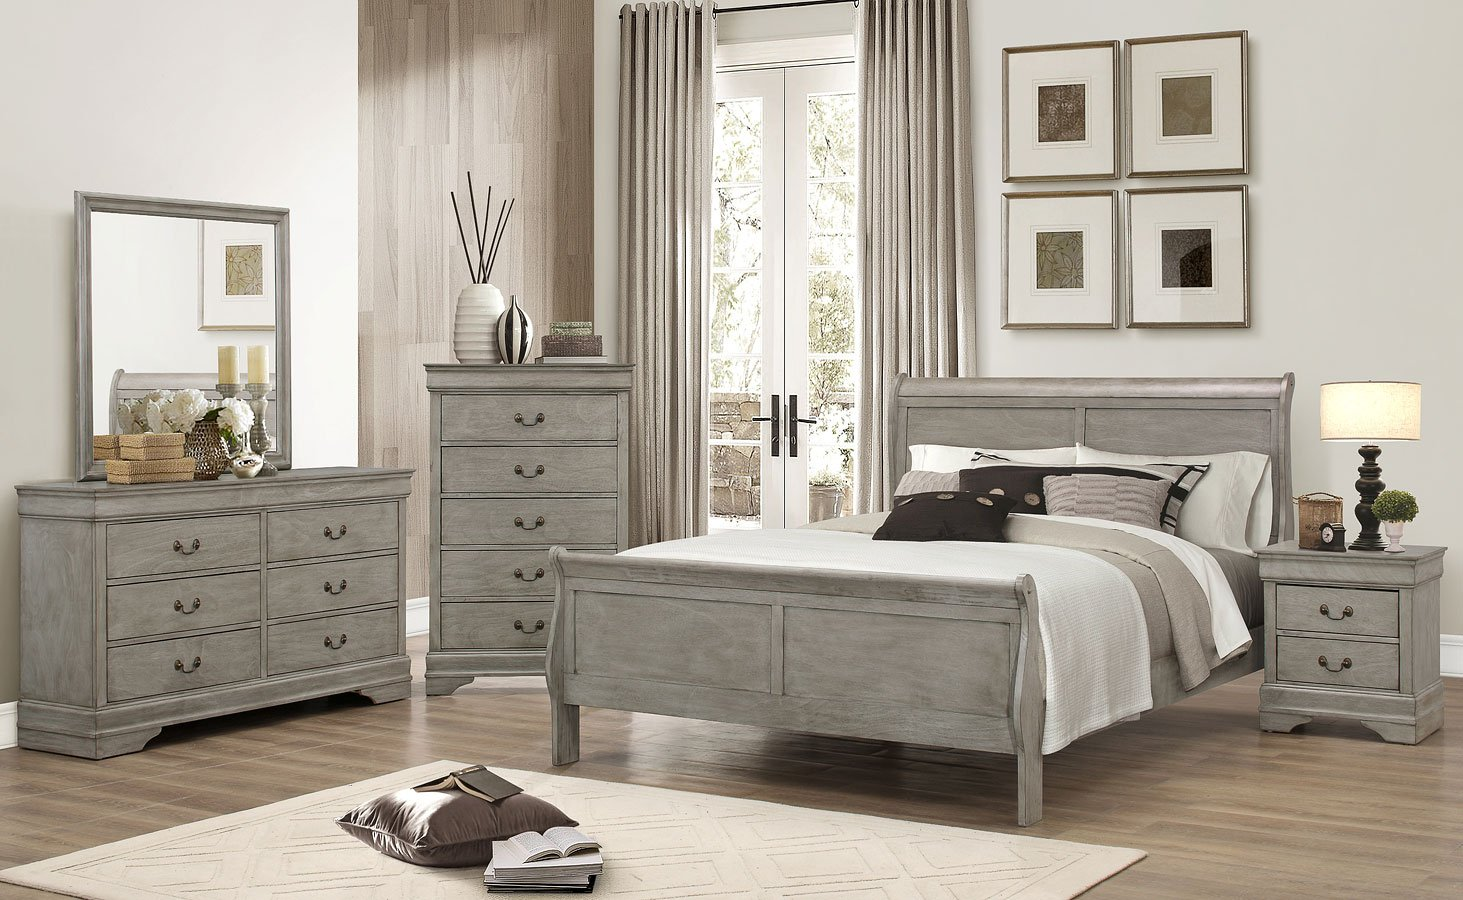 Luxury Sleigh Bedroom Sets Plans Free